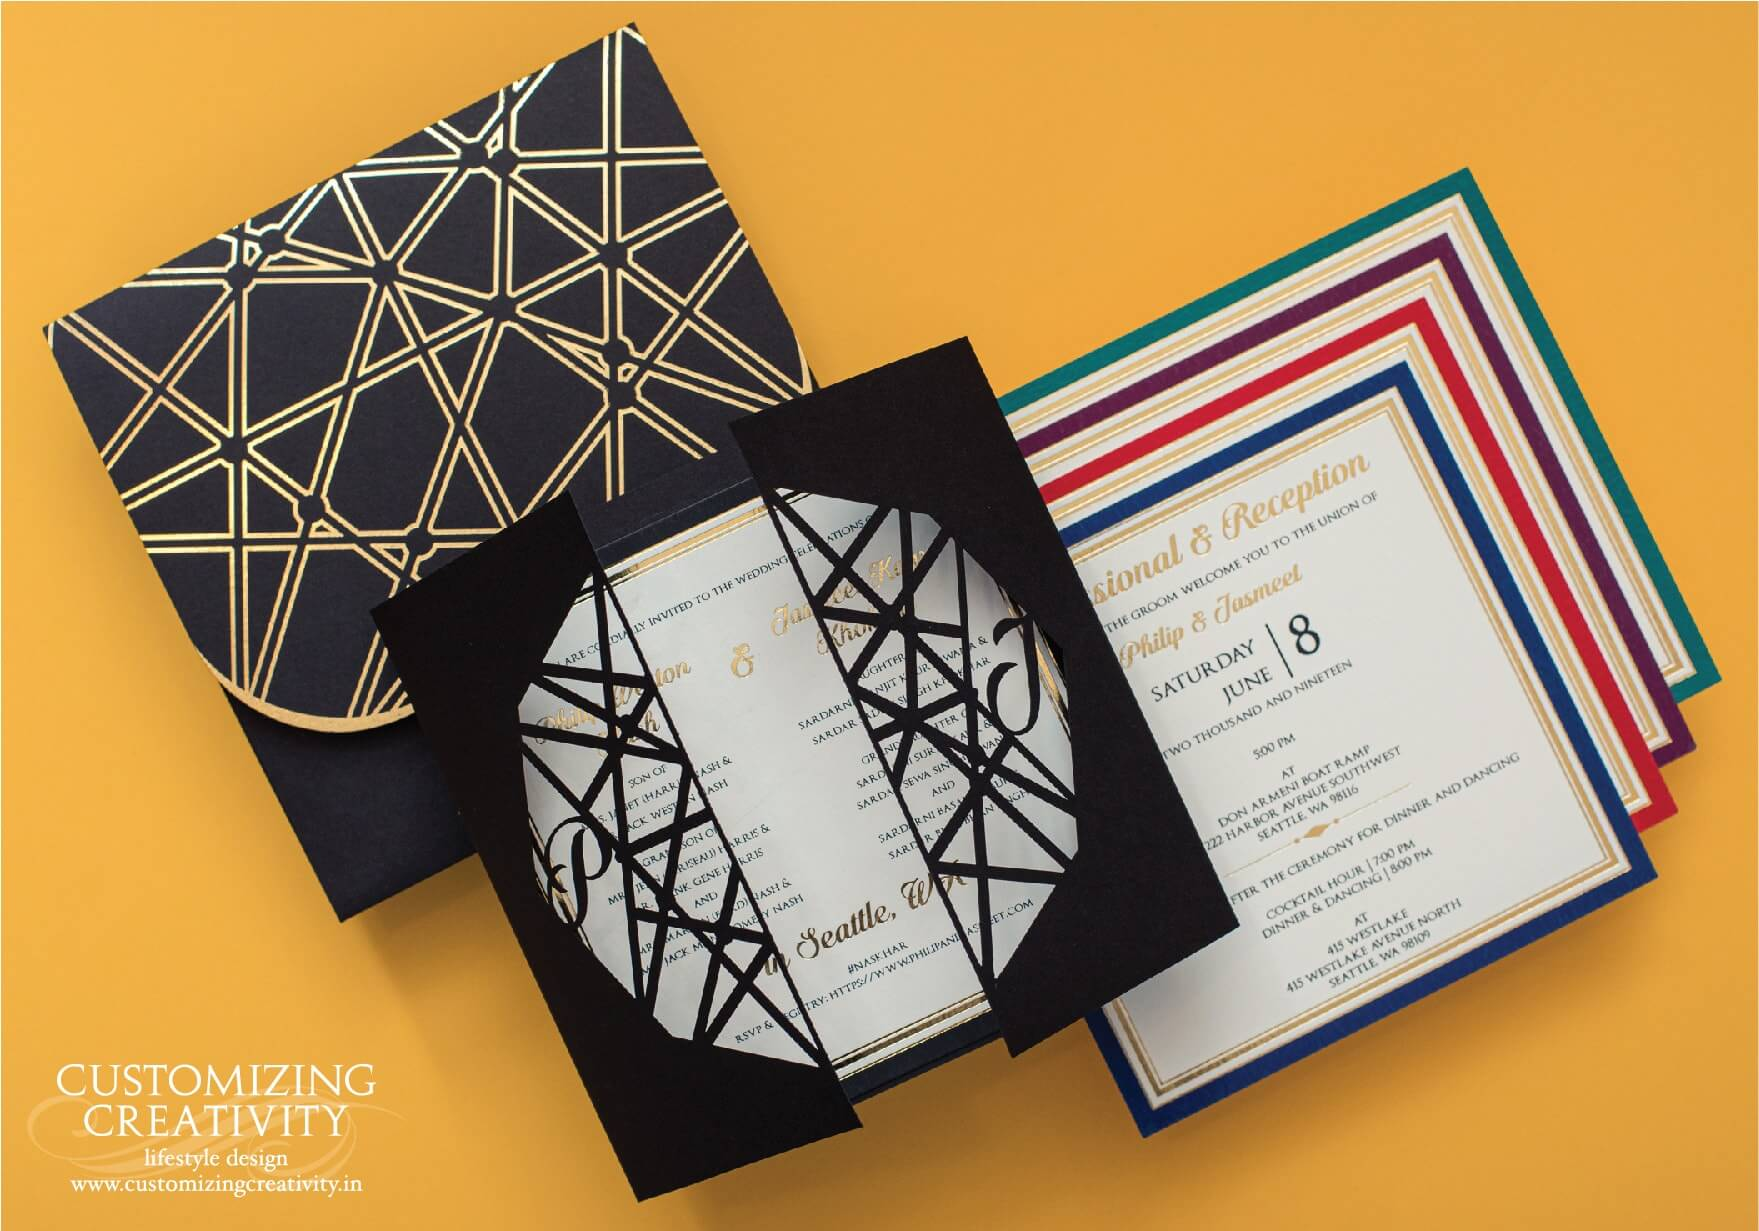 Customized Cards And Unique Wedding Invitations Customizing Creativity